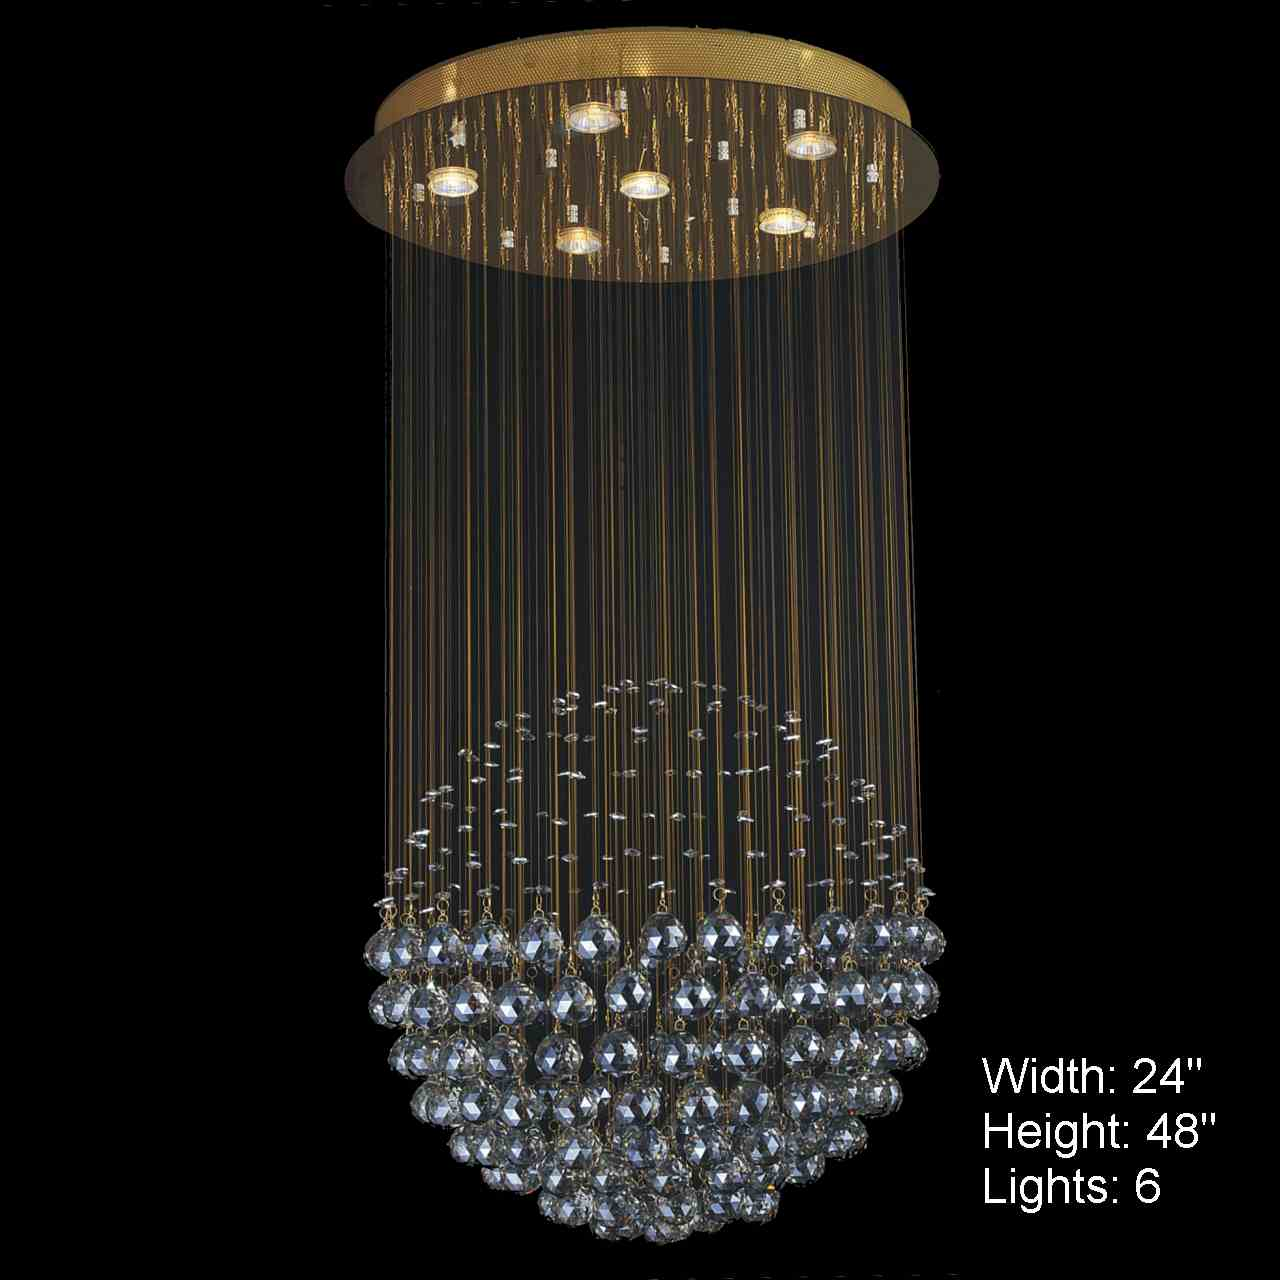 Brizzo lighting stores sphere modern crystal chandelier for Large modern chandelier lighting